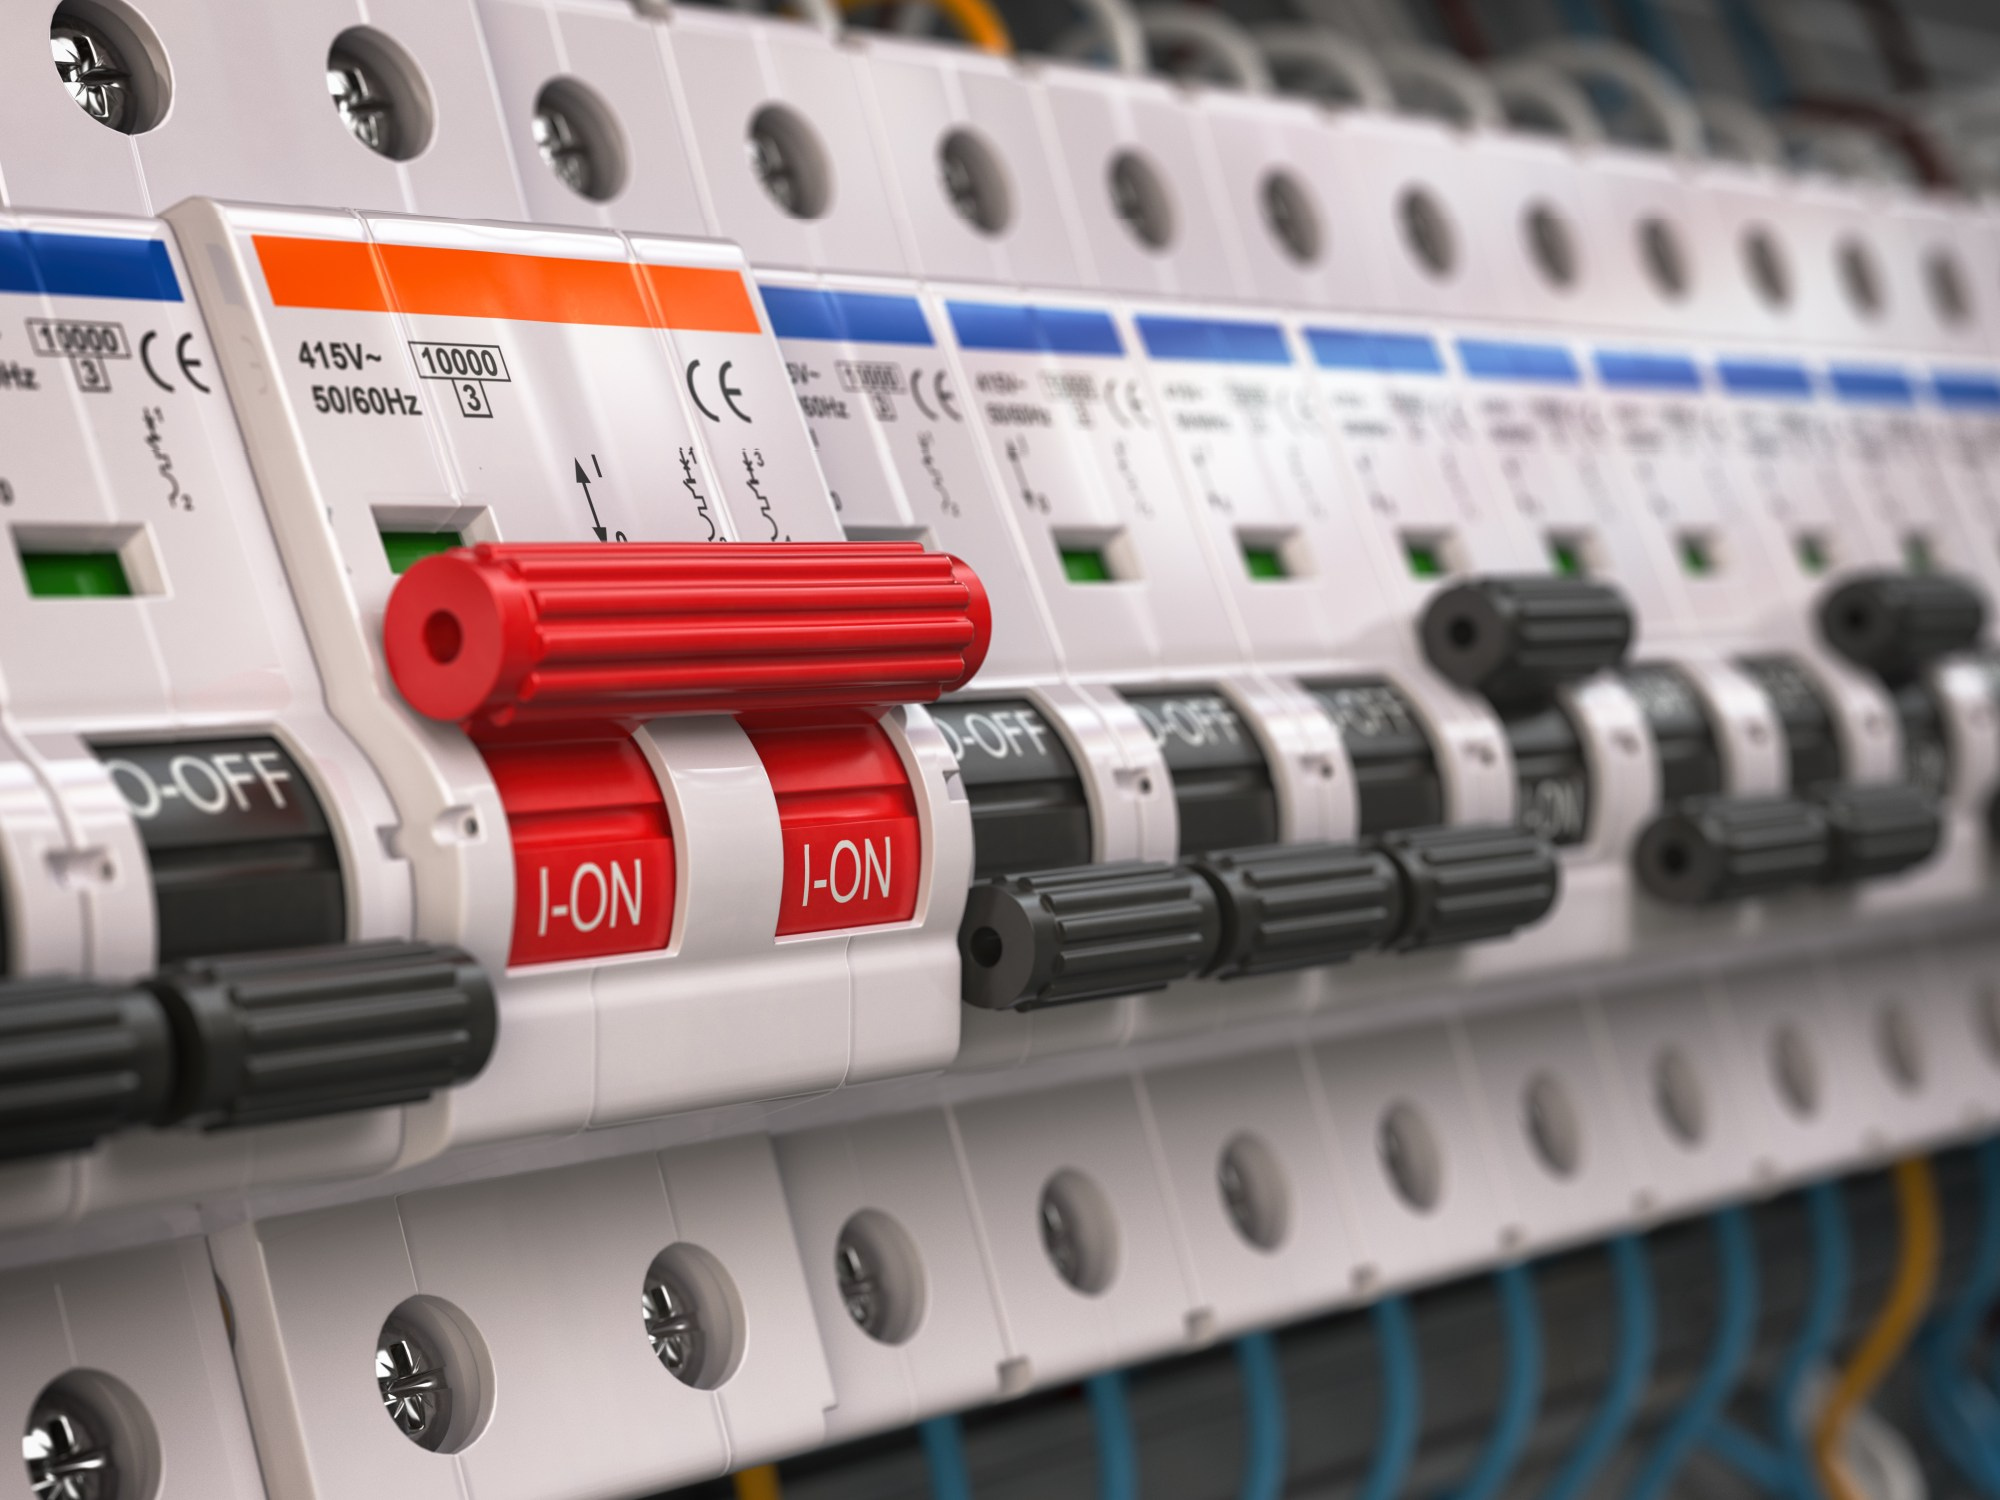 hight resolution of fuse box abbreviation meaning